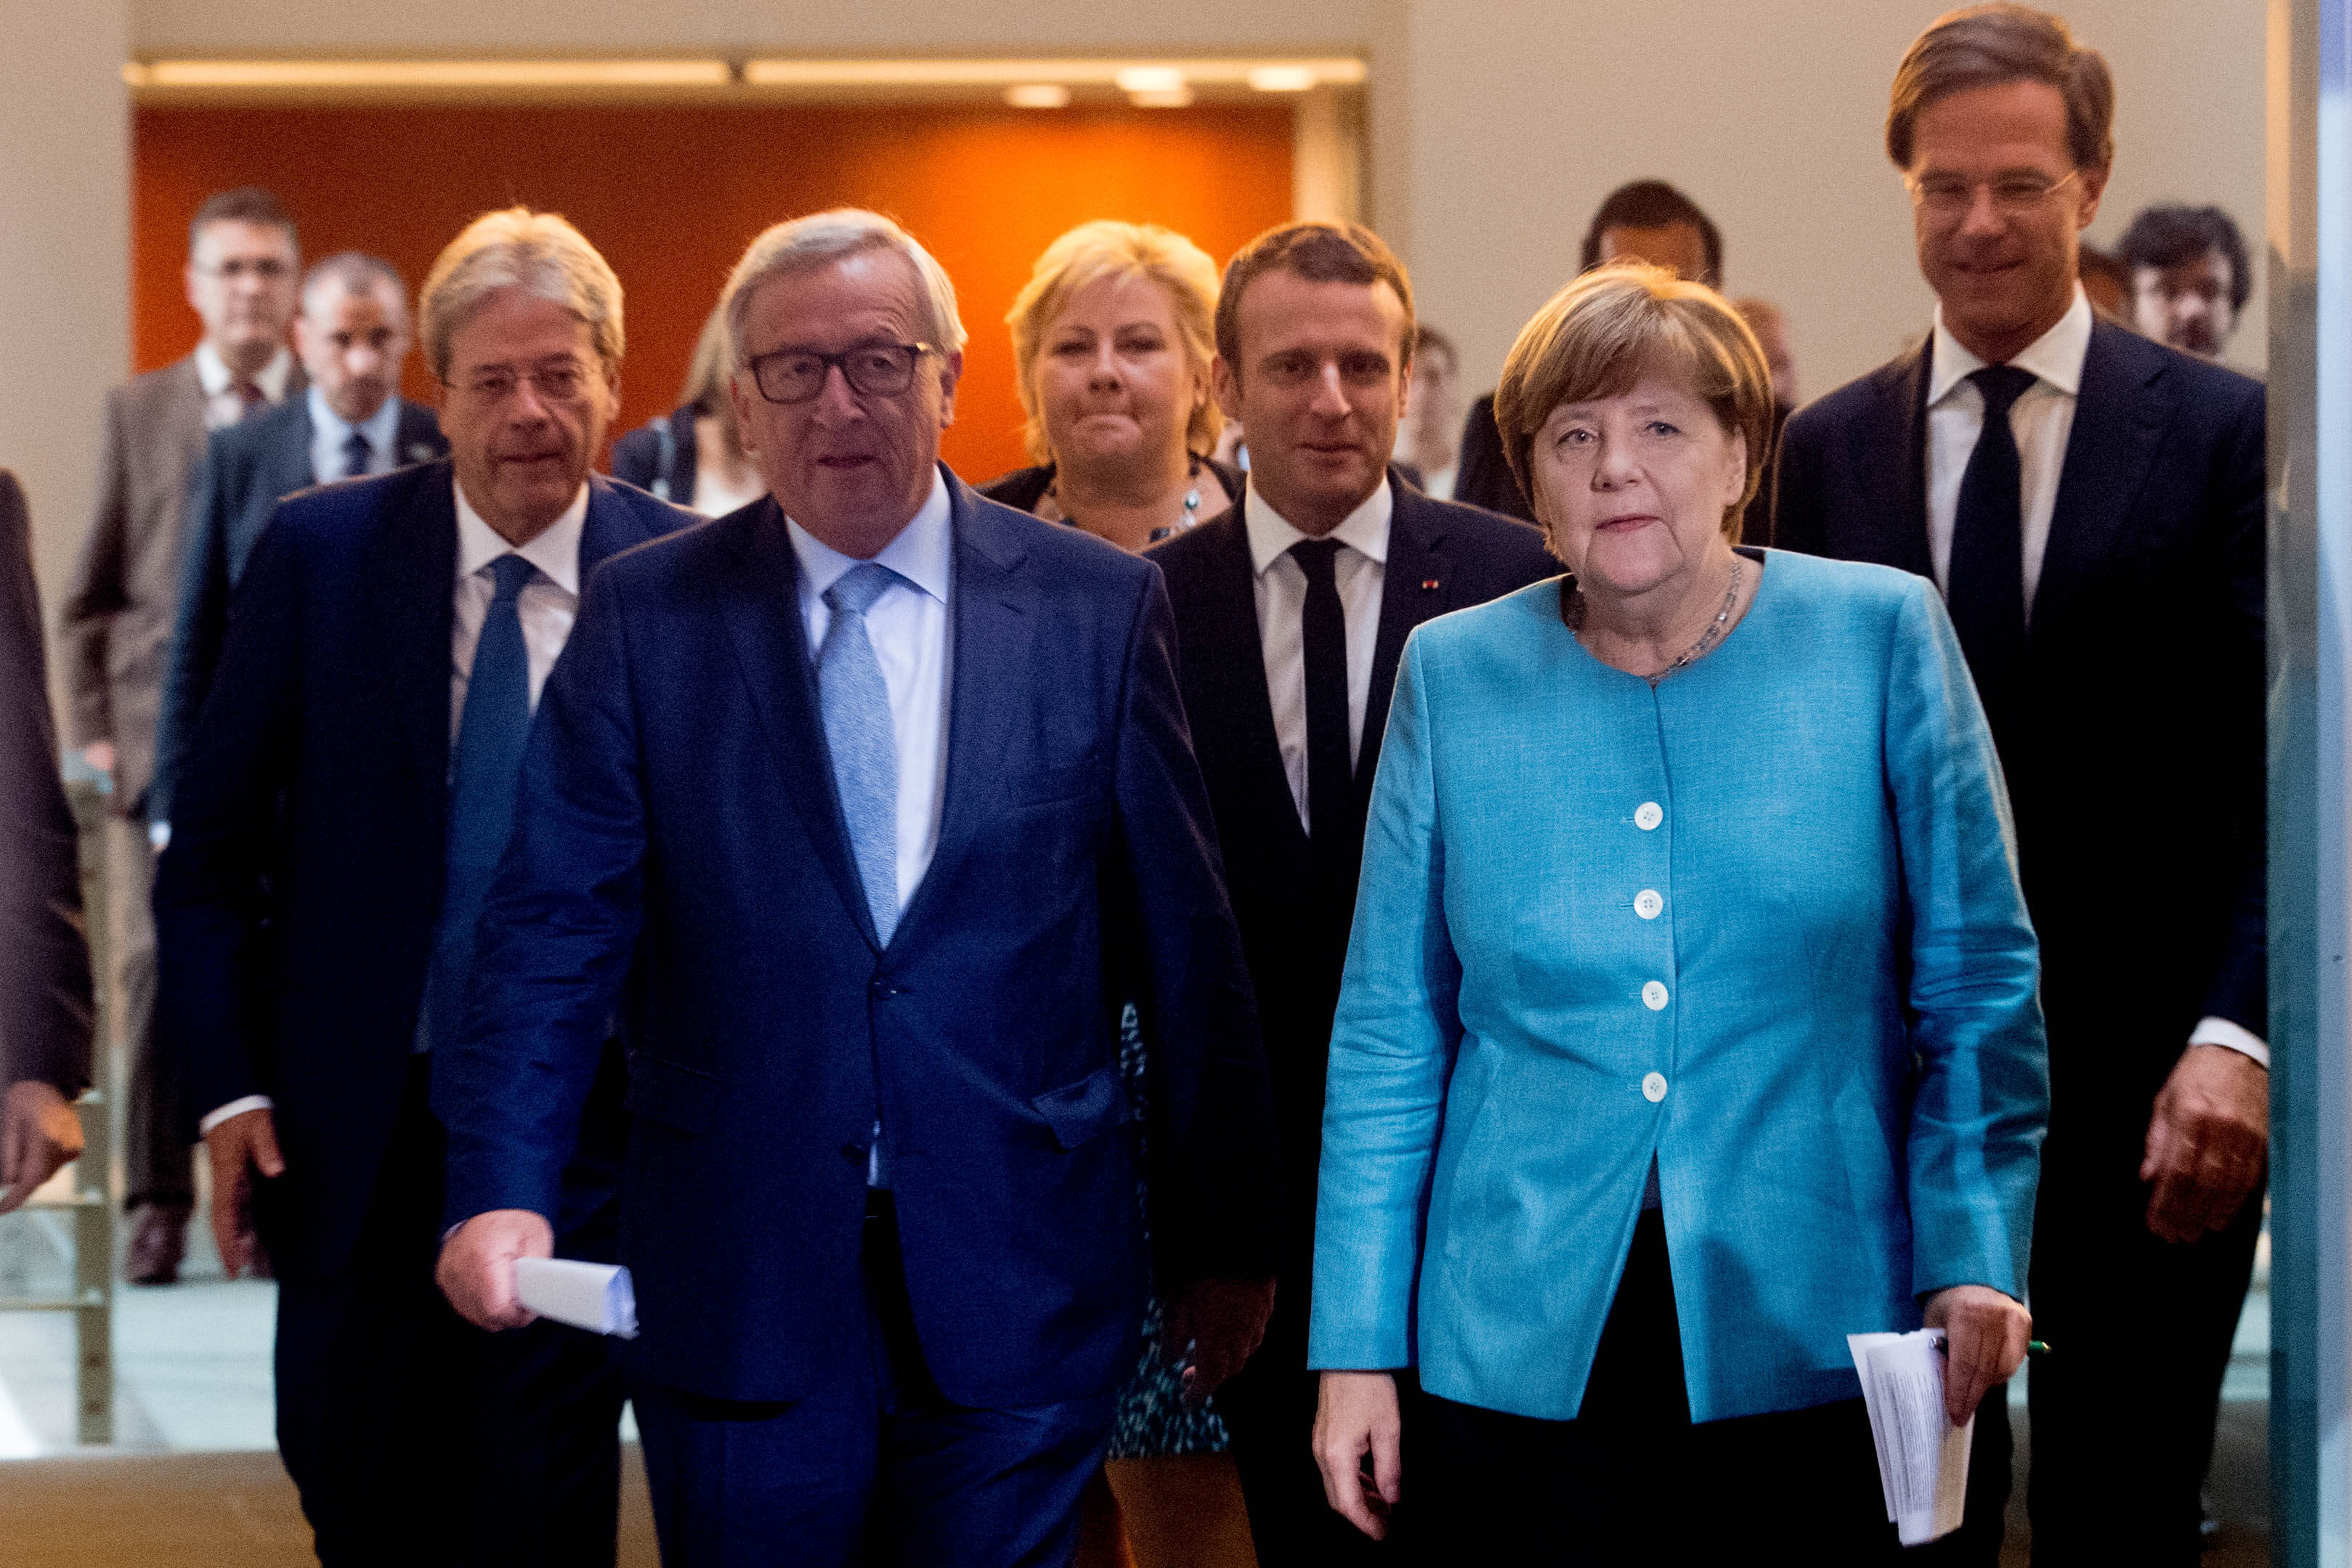 Jean-Claude Juncker with Angela Merkel, Emmanuel Marcon and Mark Rutte.